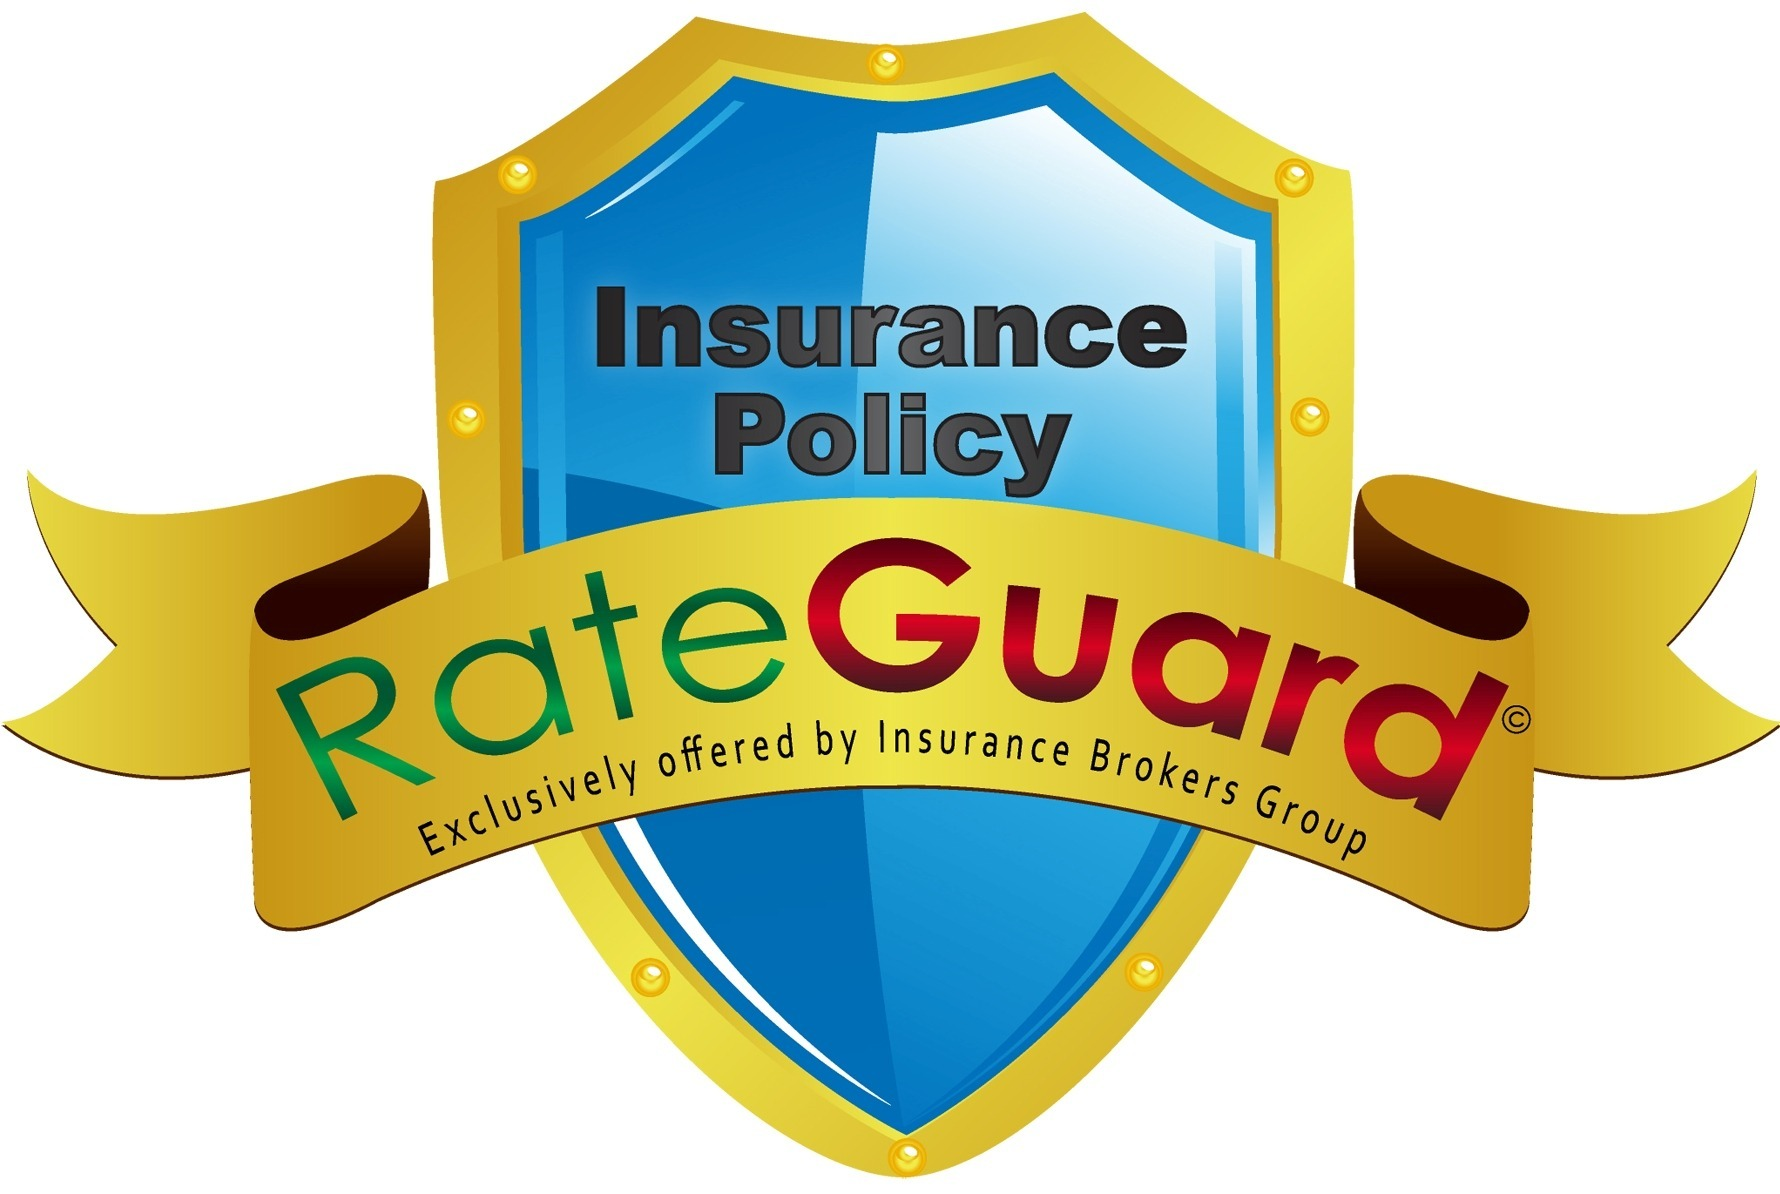 RateGuard insurance policy review program